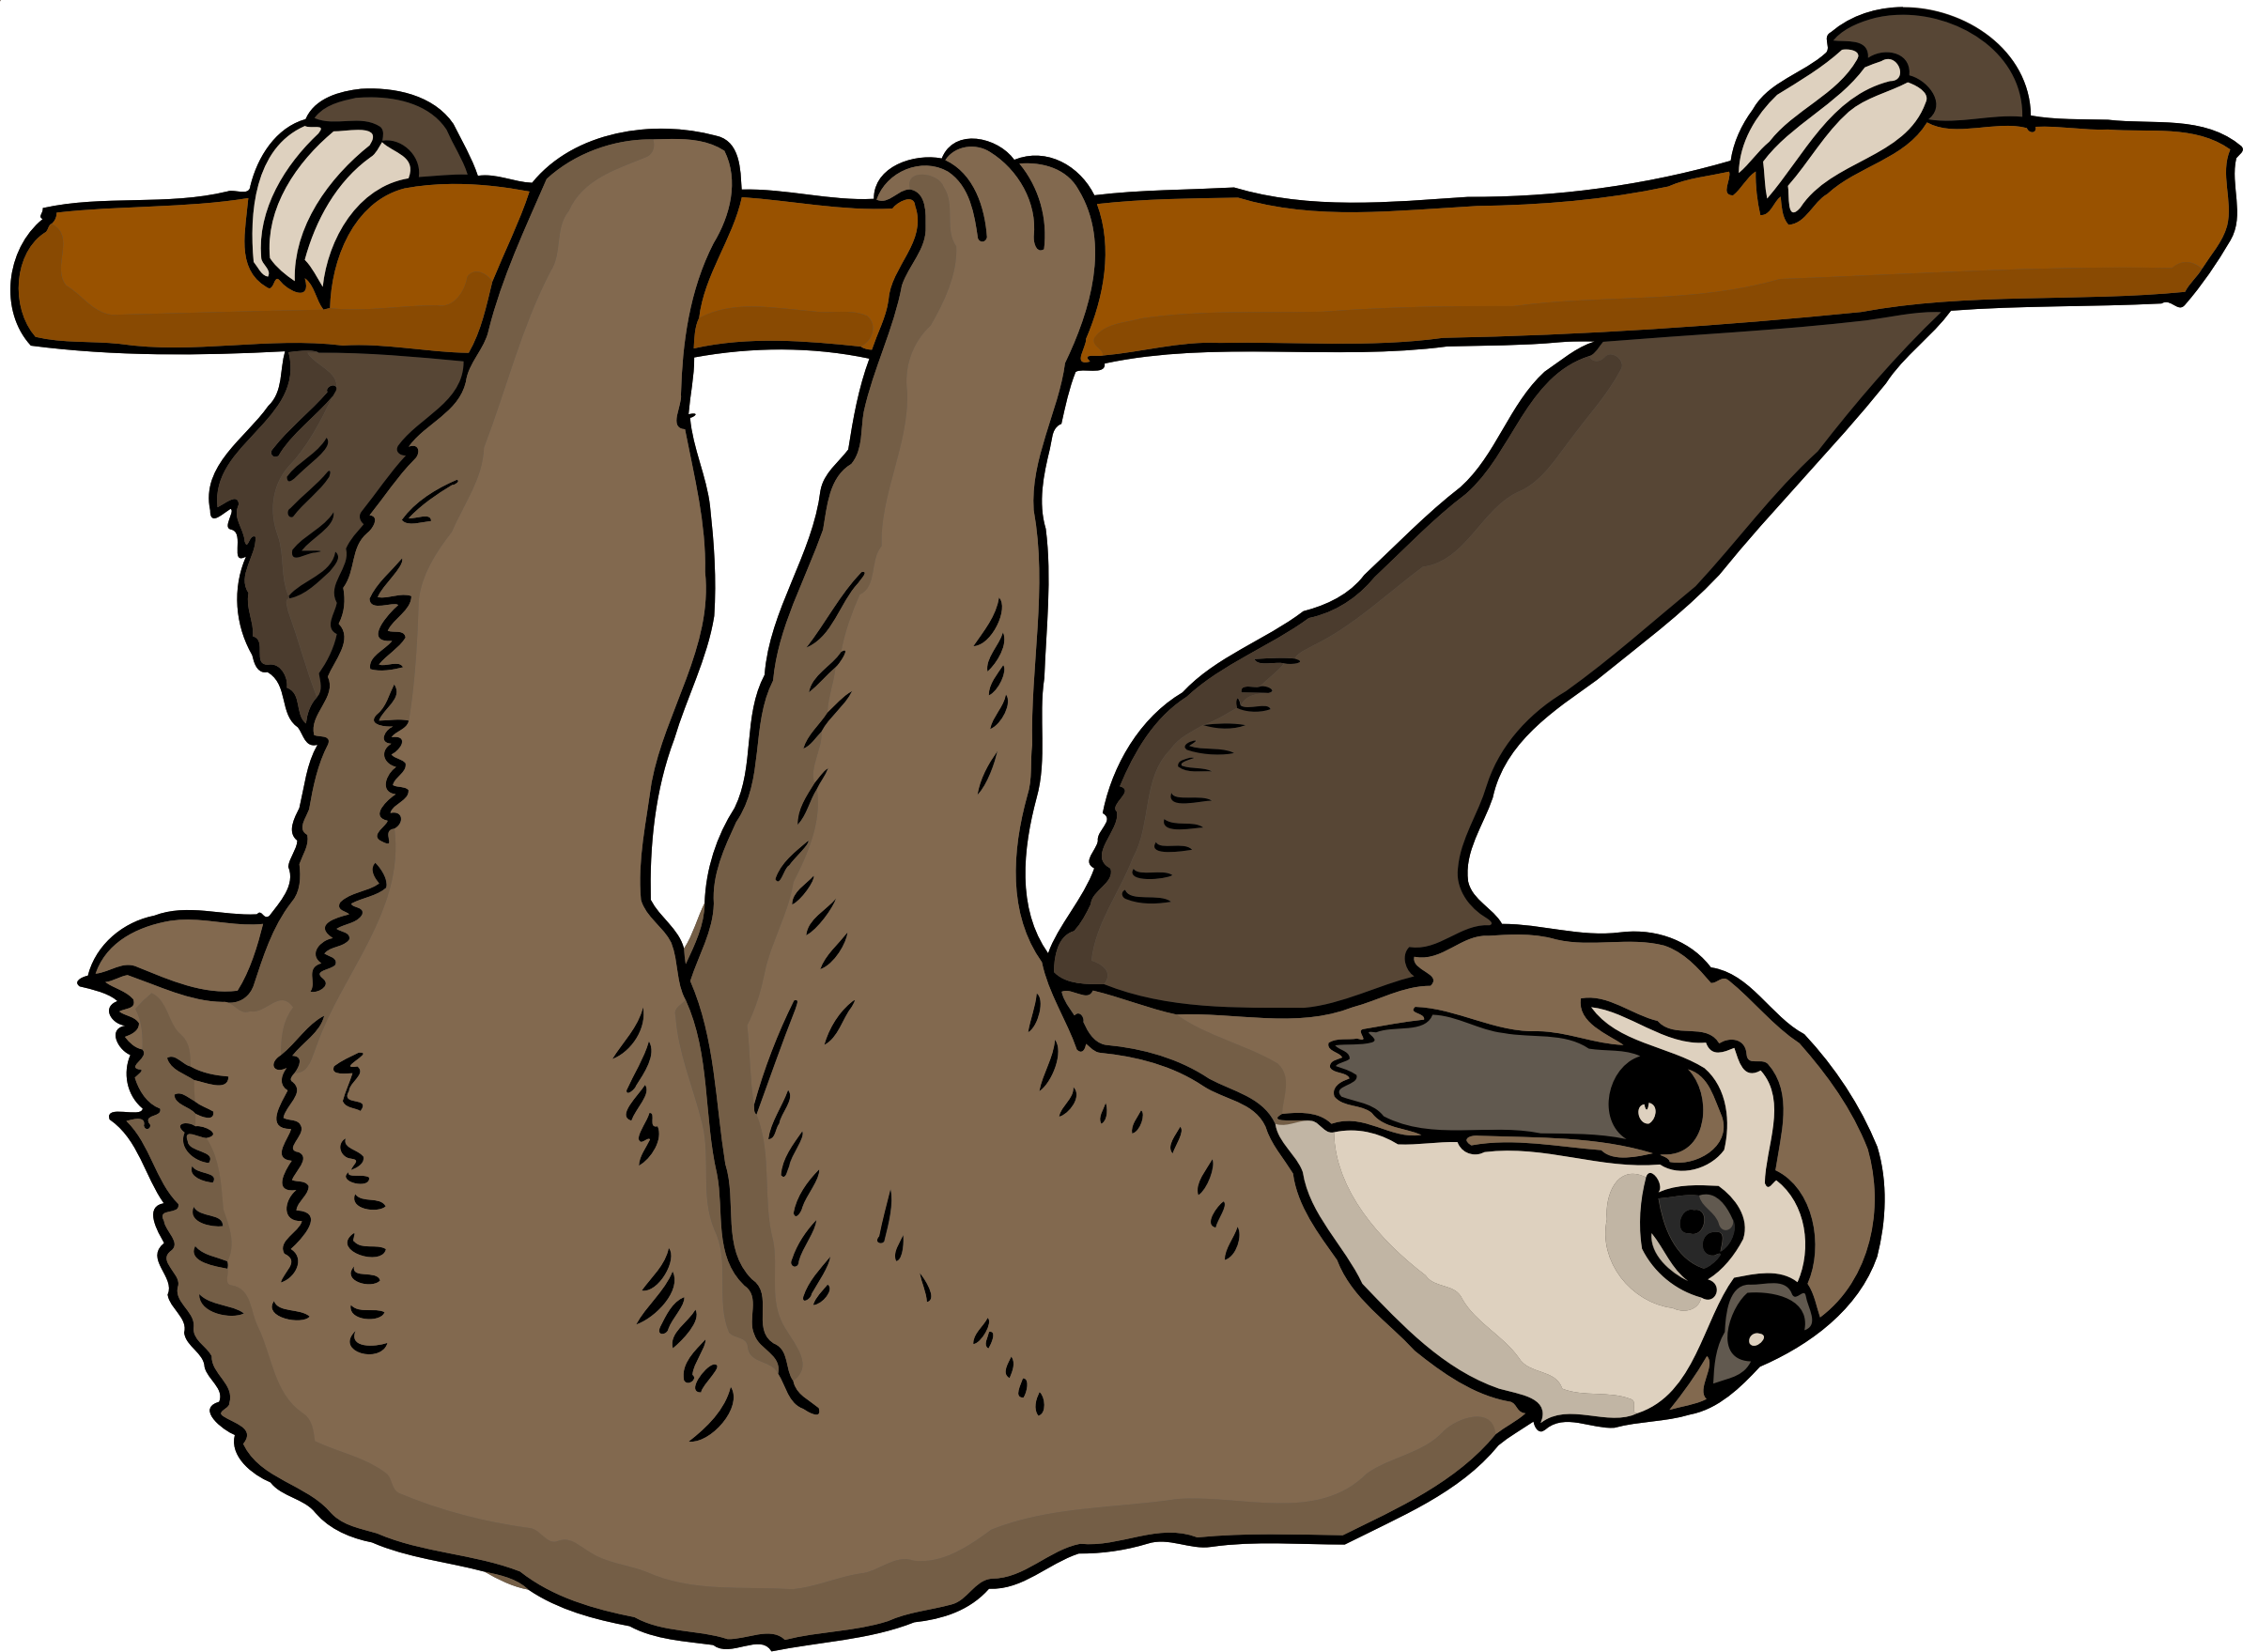 svg black and white Big image png. Sloth clipart.